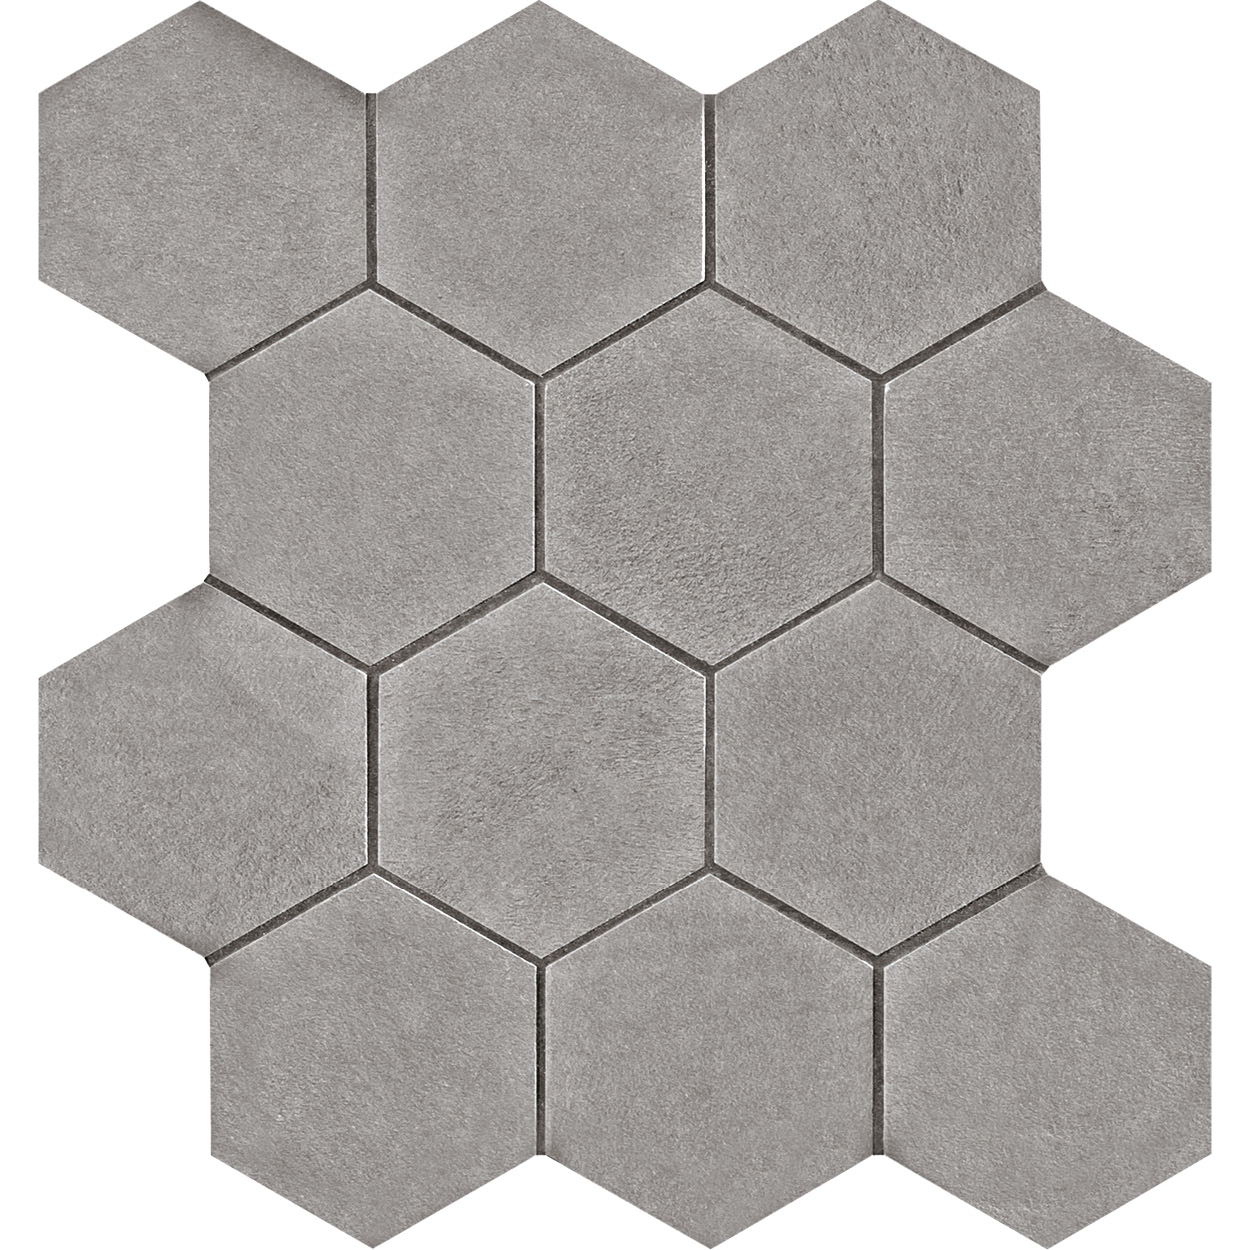 3 X 3 Seamless CL_01 hexagon